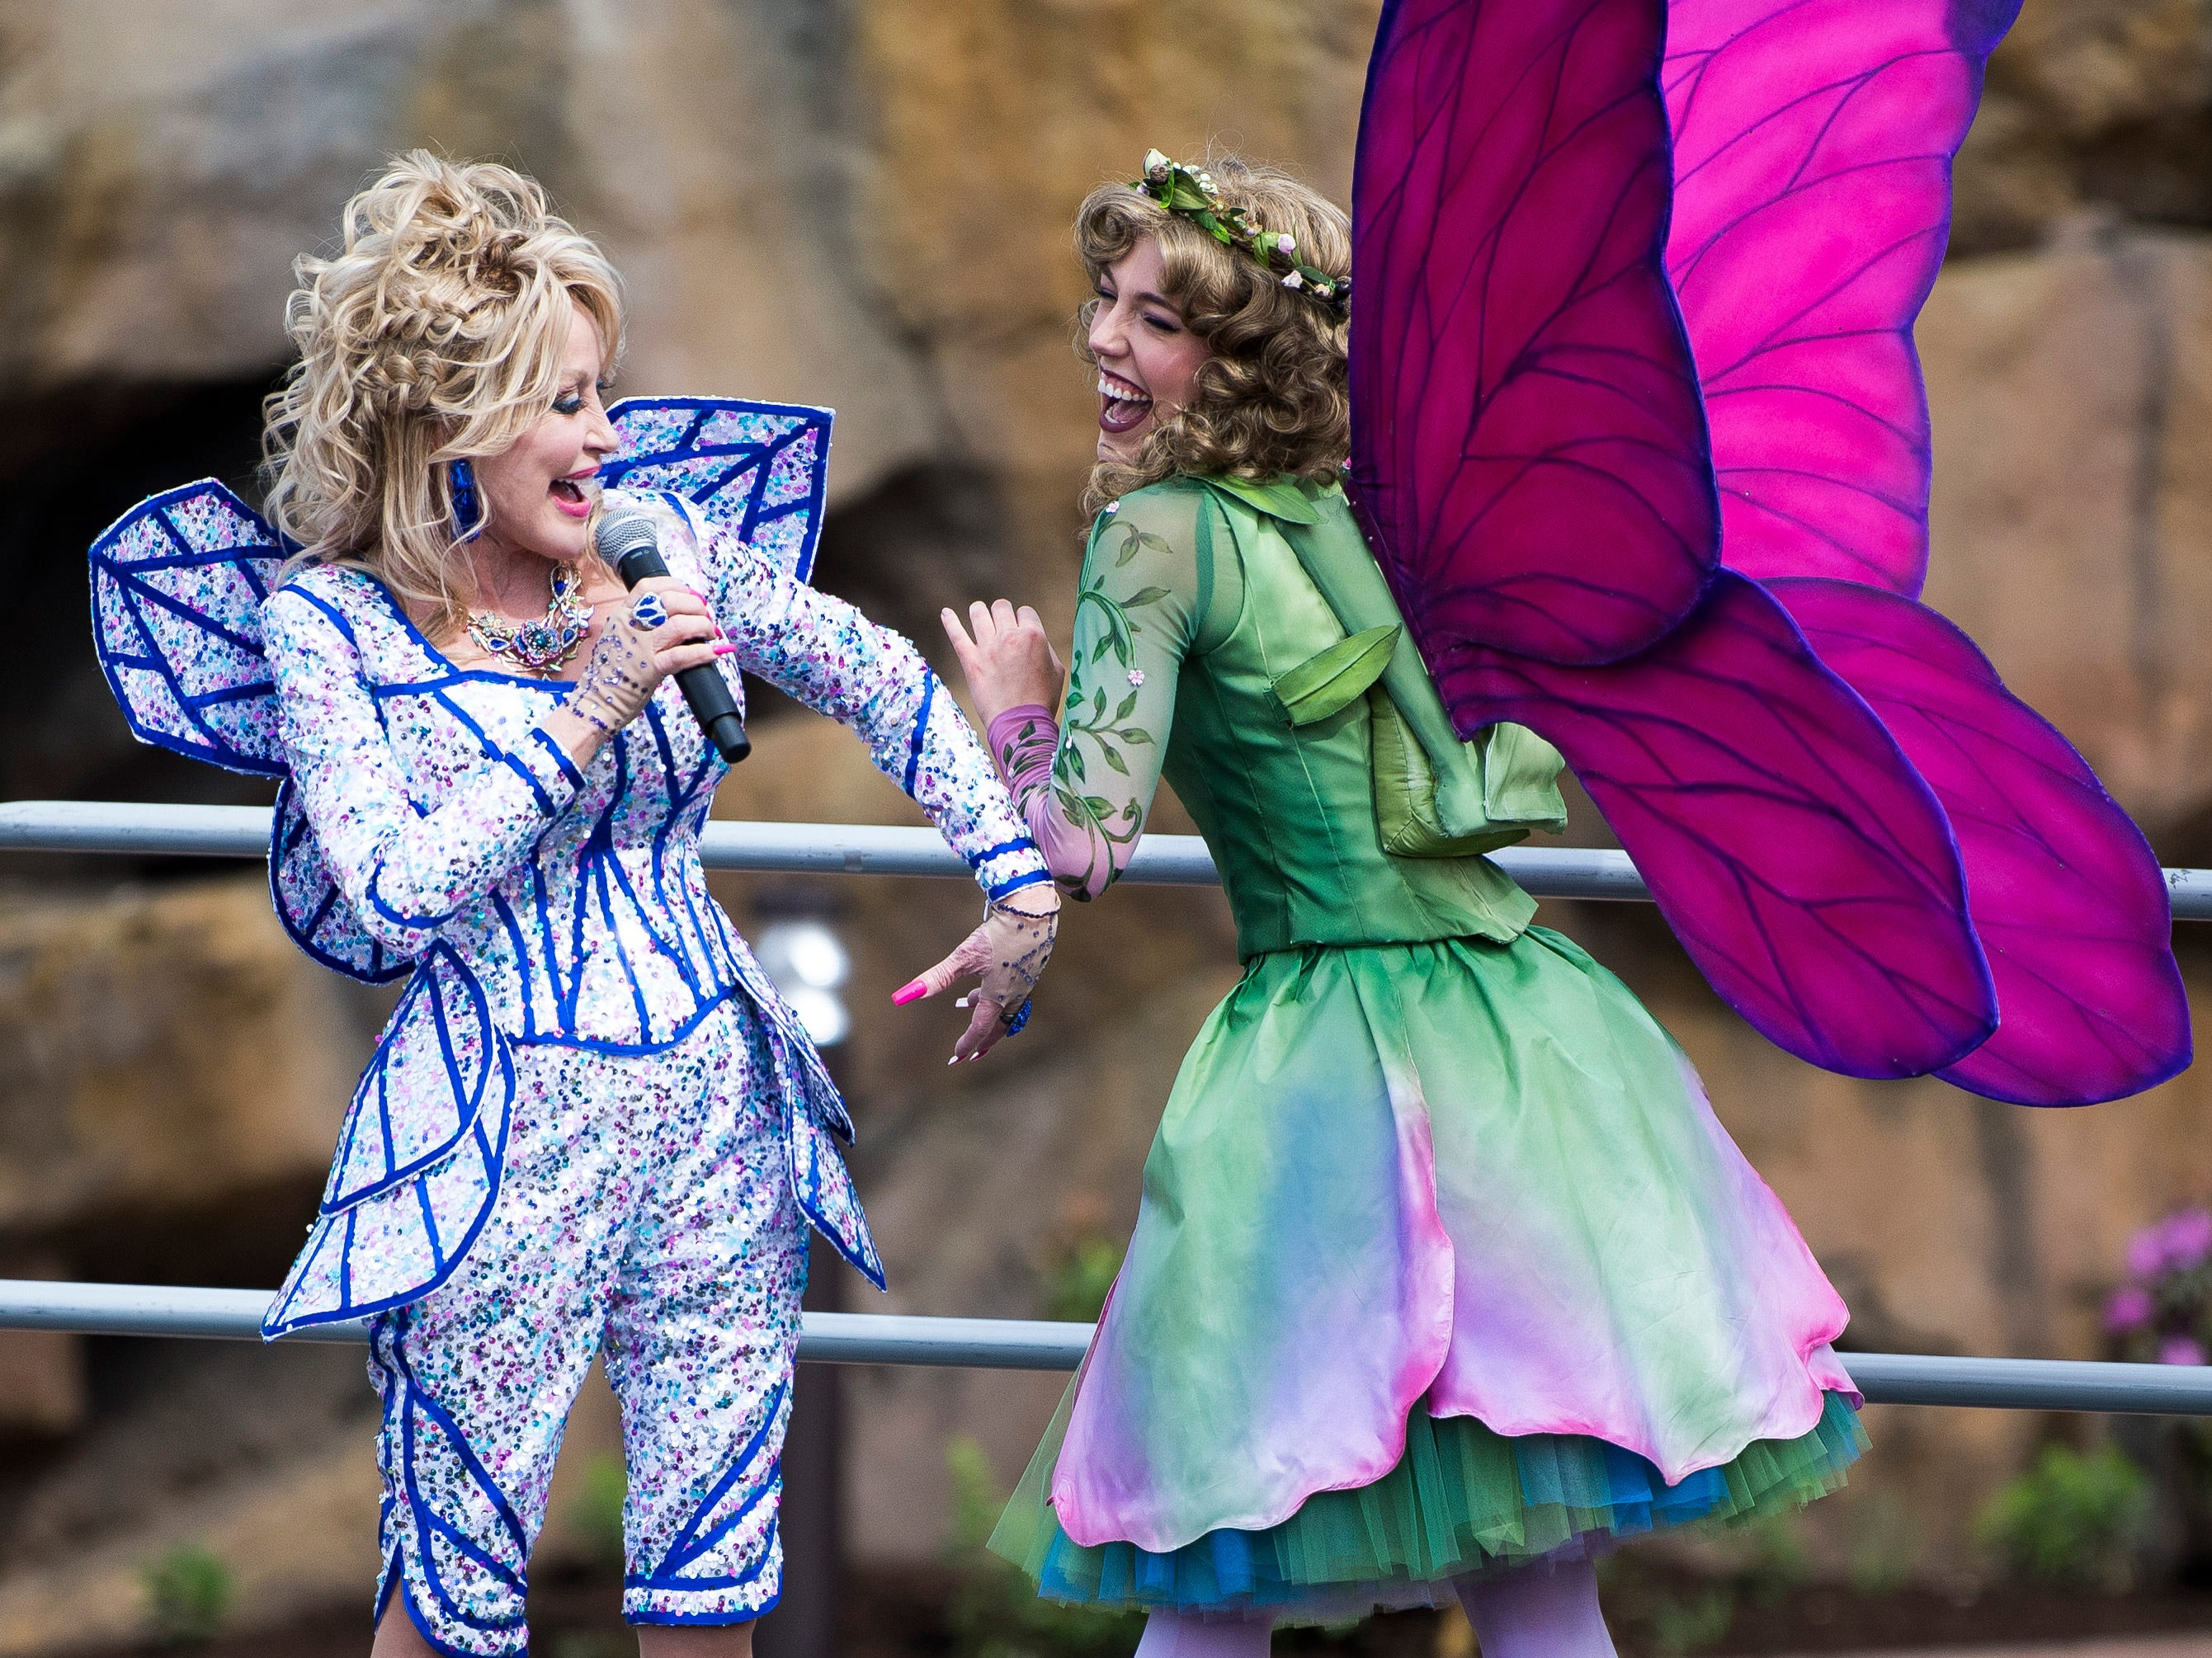 Dolly Parton jokes with a butterfly character during the grand opening of Dollywood's new Wildwood Grove expansion on Friday, May 10, 2019.